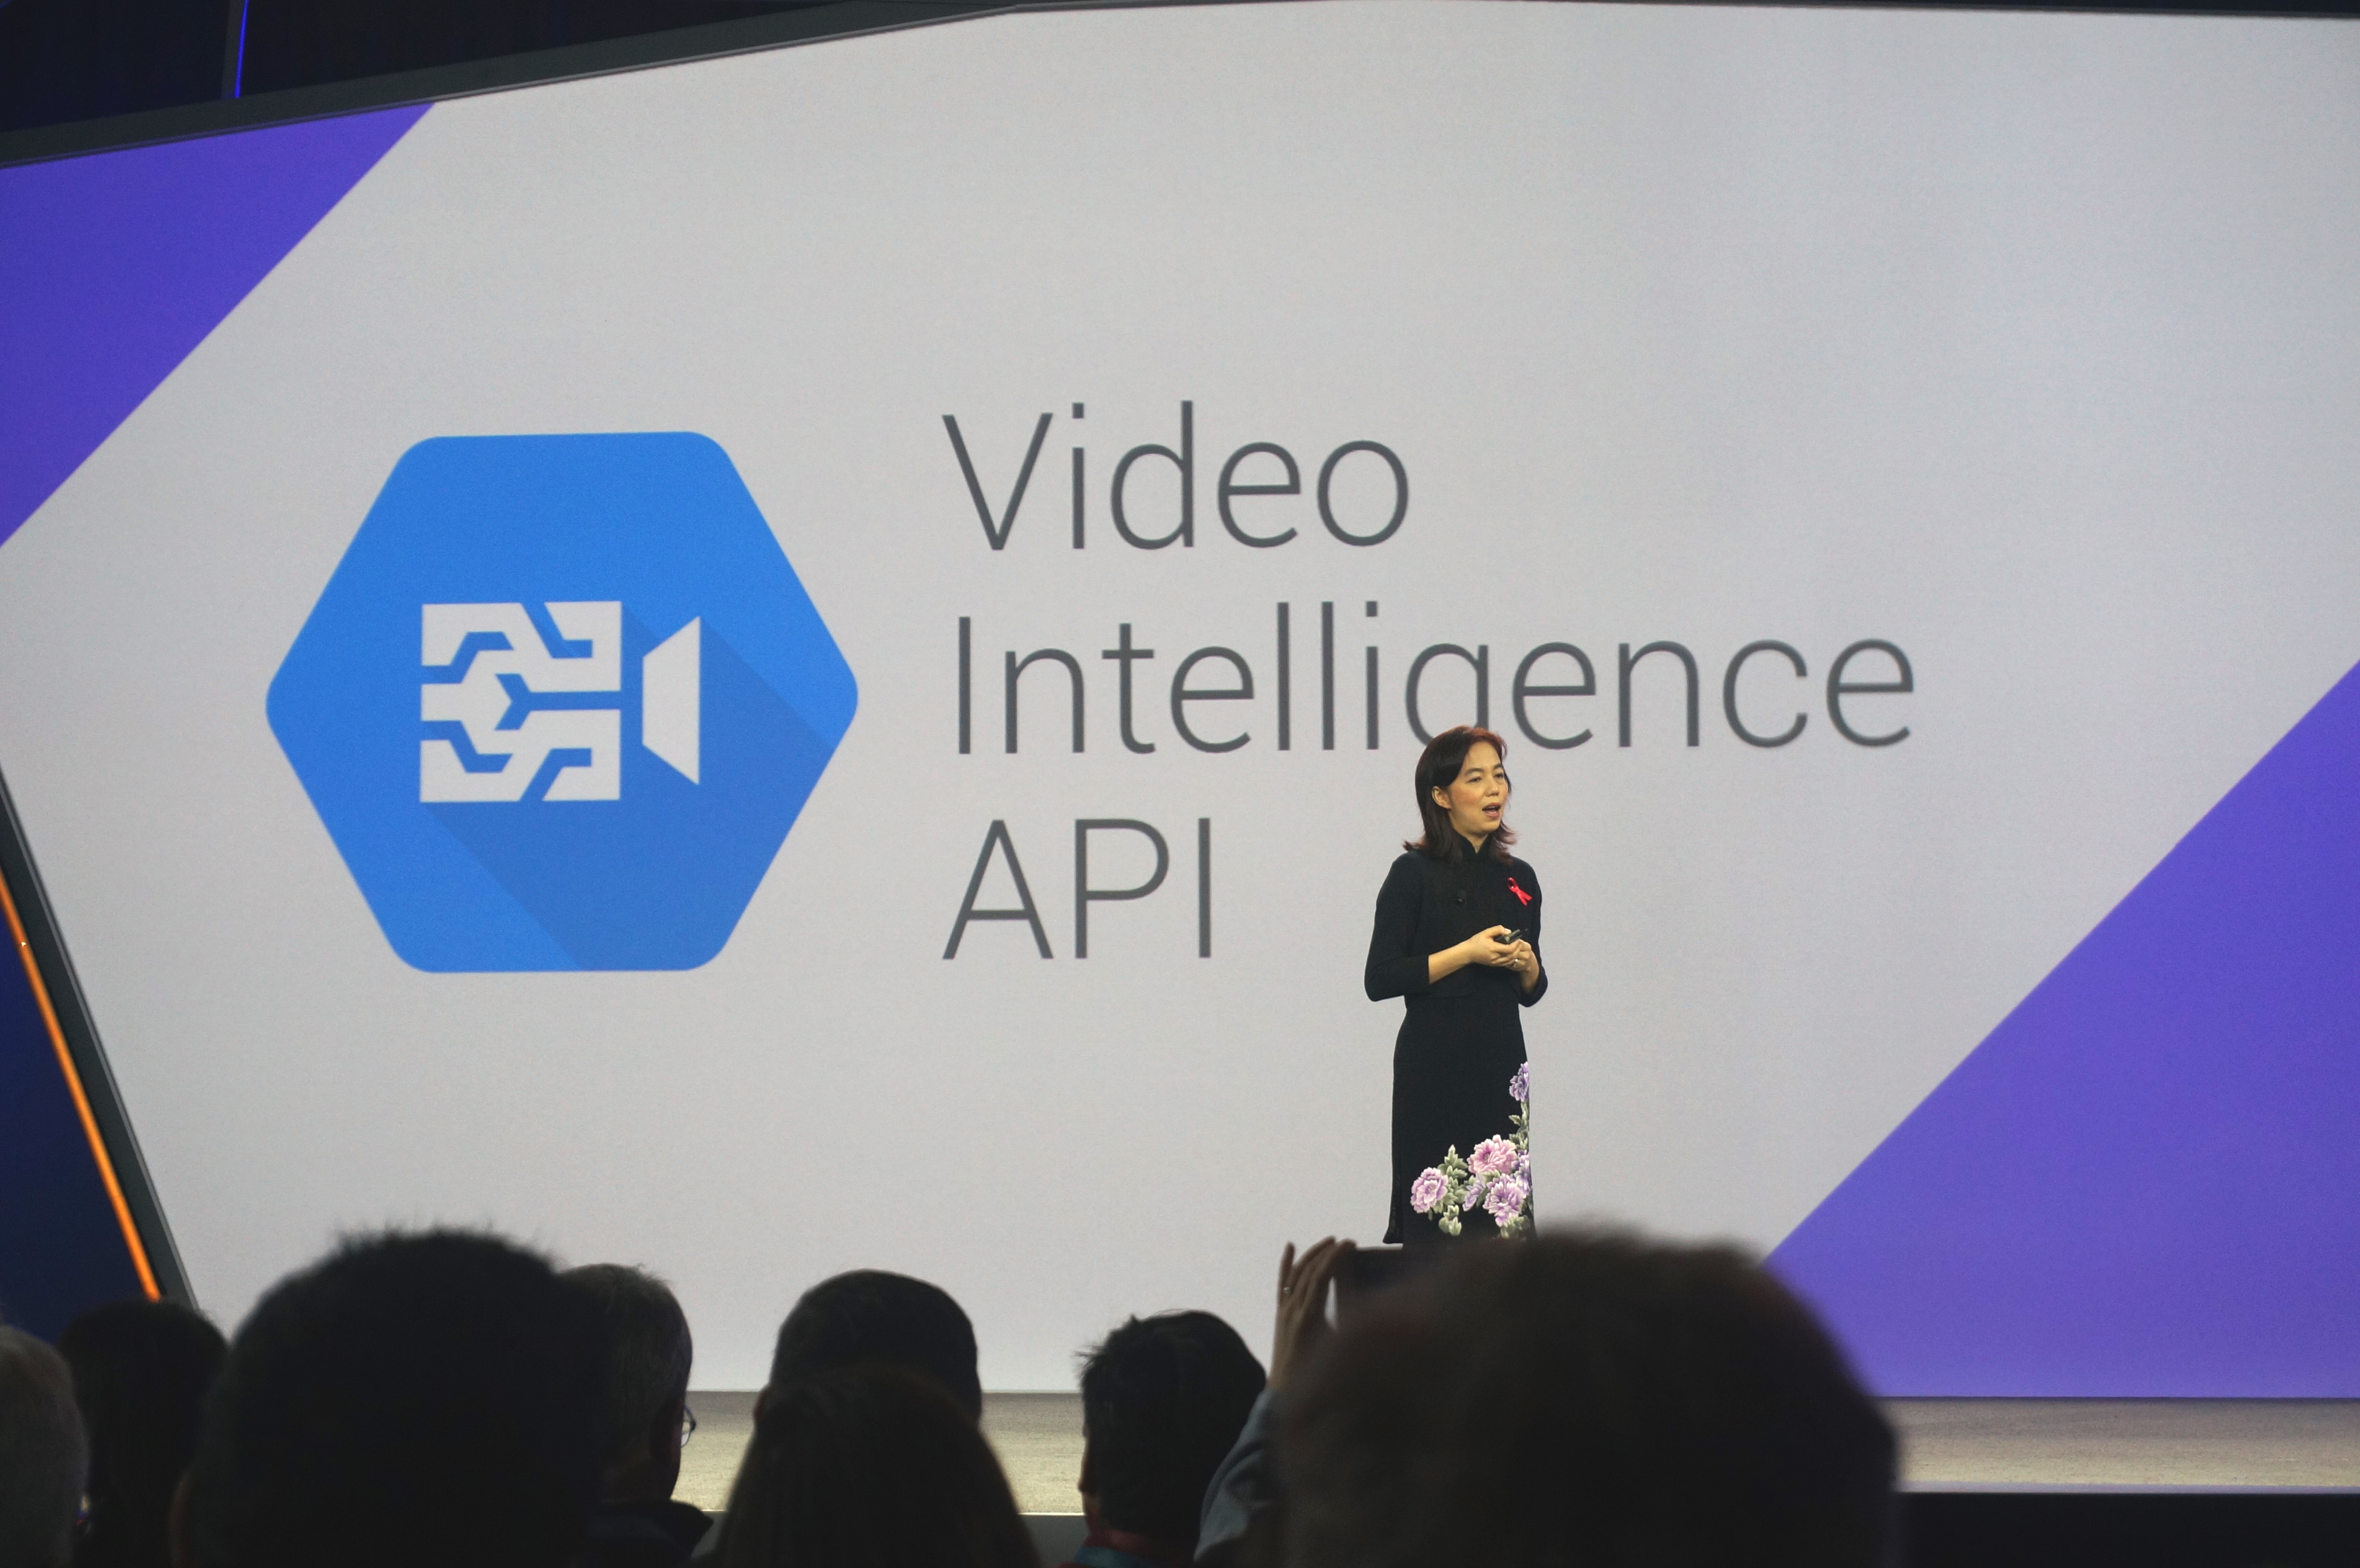 Google's new machine learning API recognizes objects in videos